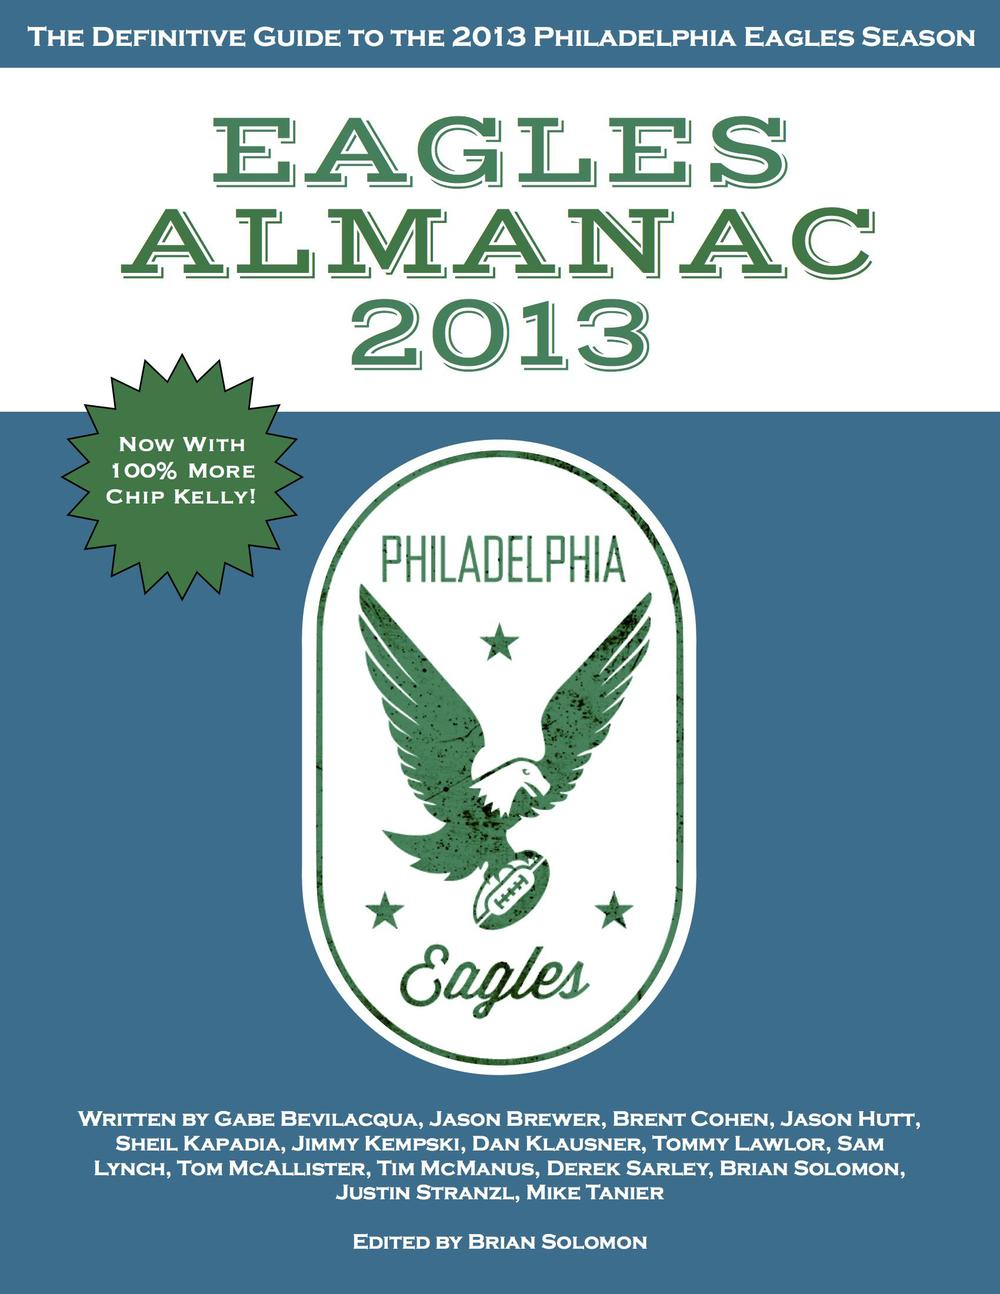 Eagles Almanac 2013 cover.jpg